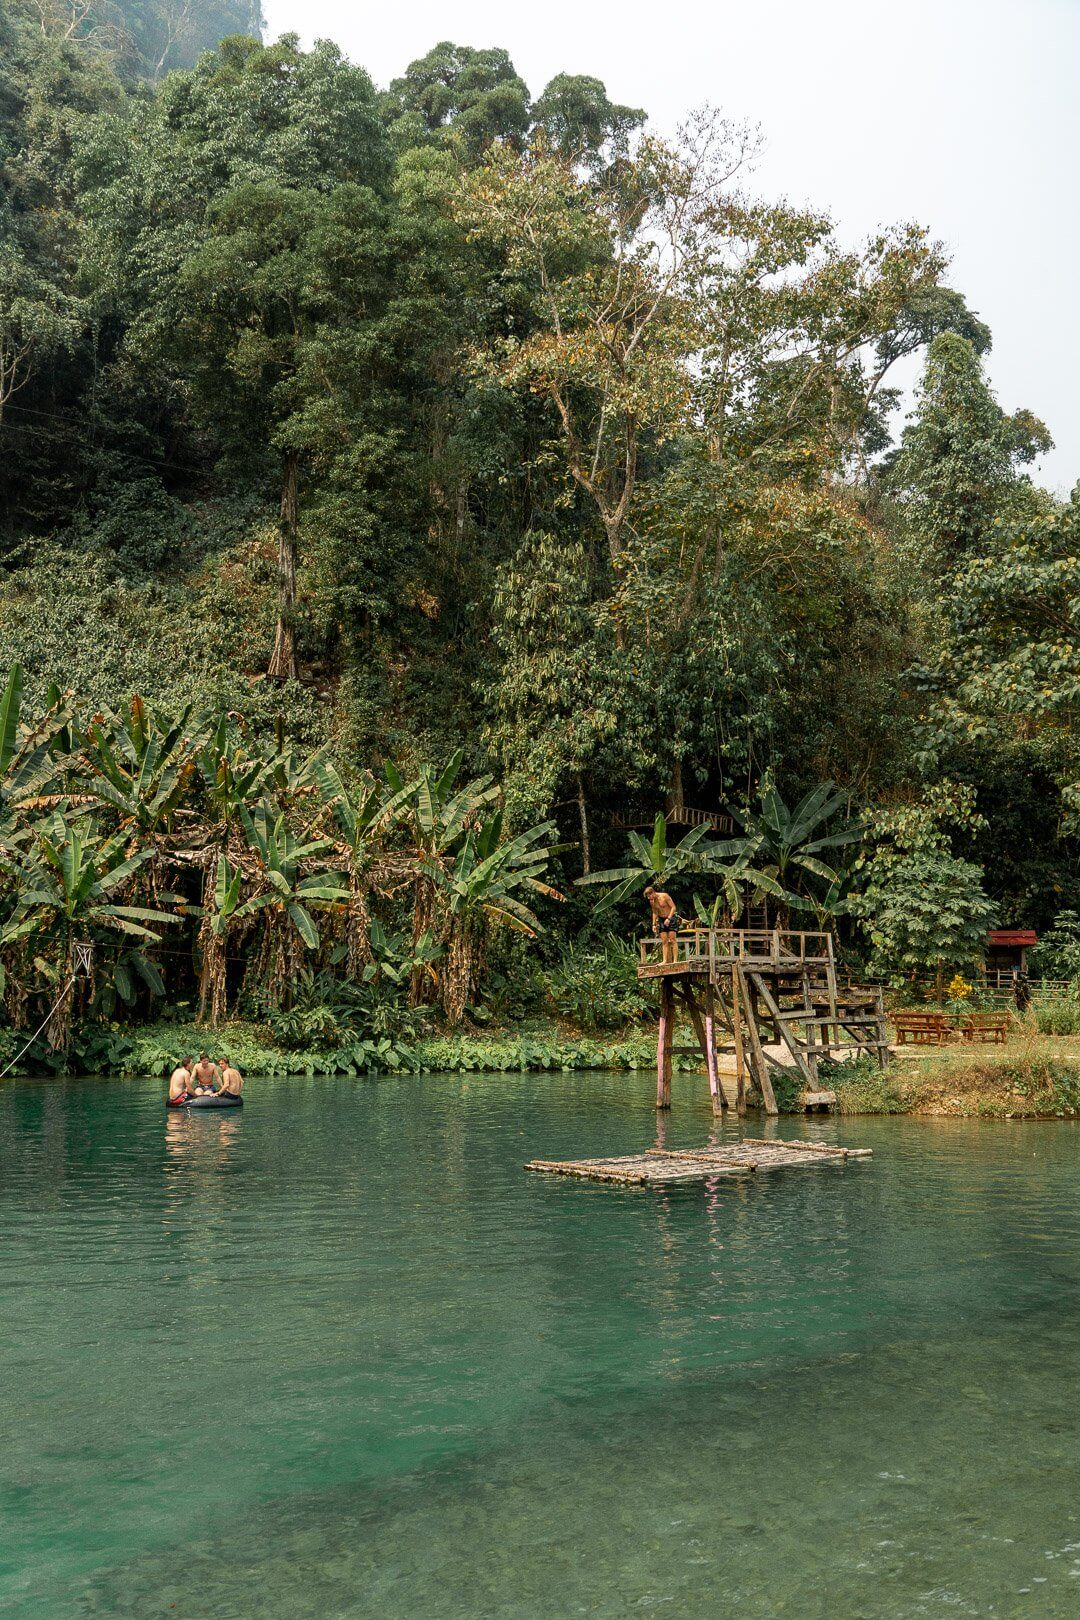 Rafts and zip lines at the blue lagoon 3 in Vang Vieng, Laos